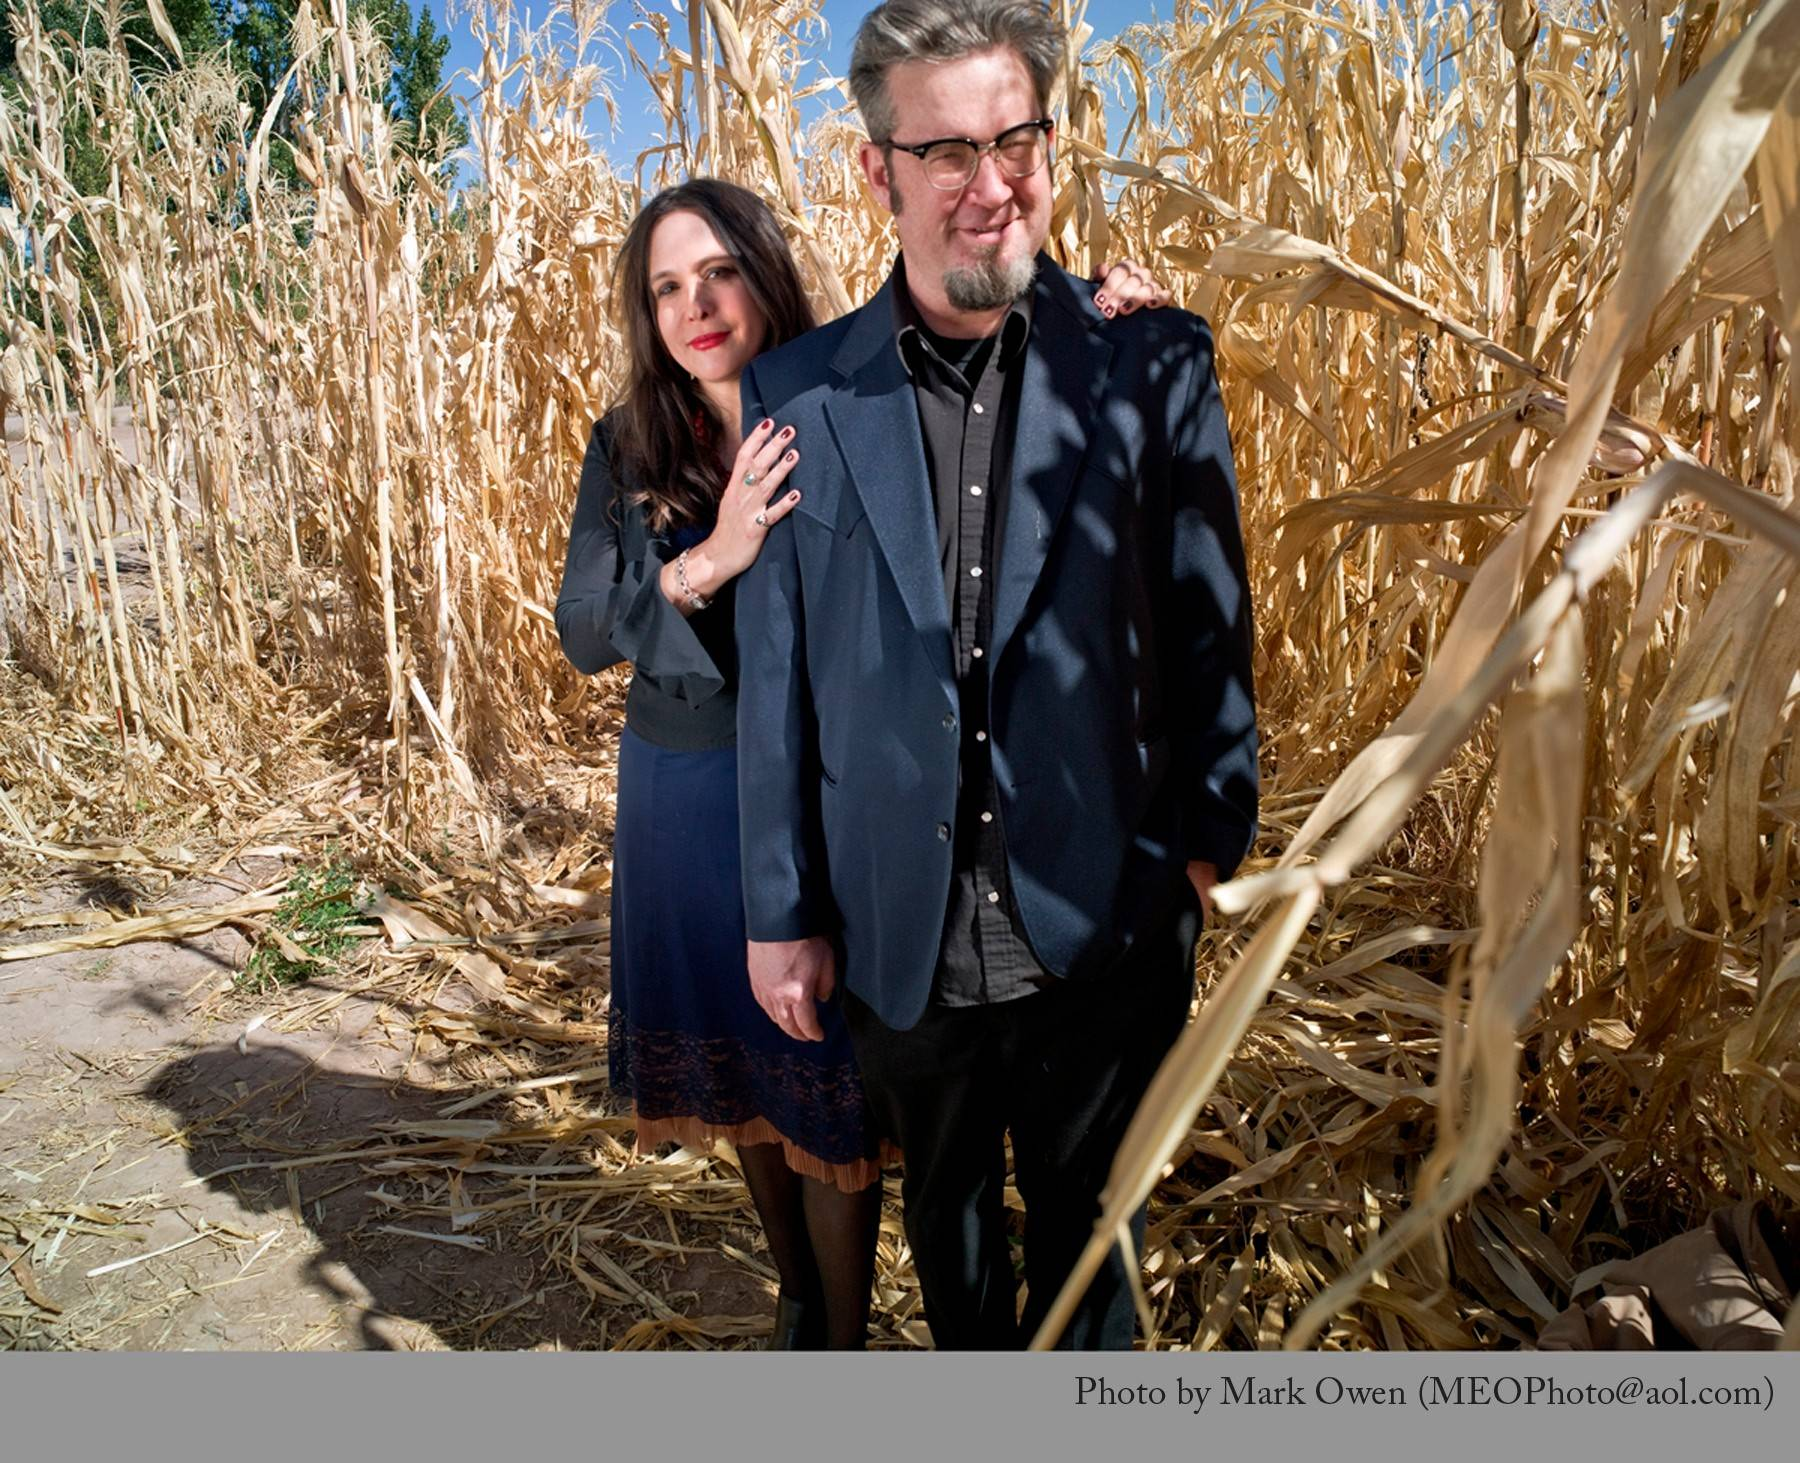 The Handsome Family, a husband-and-wife duo that specializes in dark and witty Americana music, will be one of the artists performing later this summer at the annual Hideout Block Party, a laid-back alternative to the big music fests.